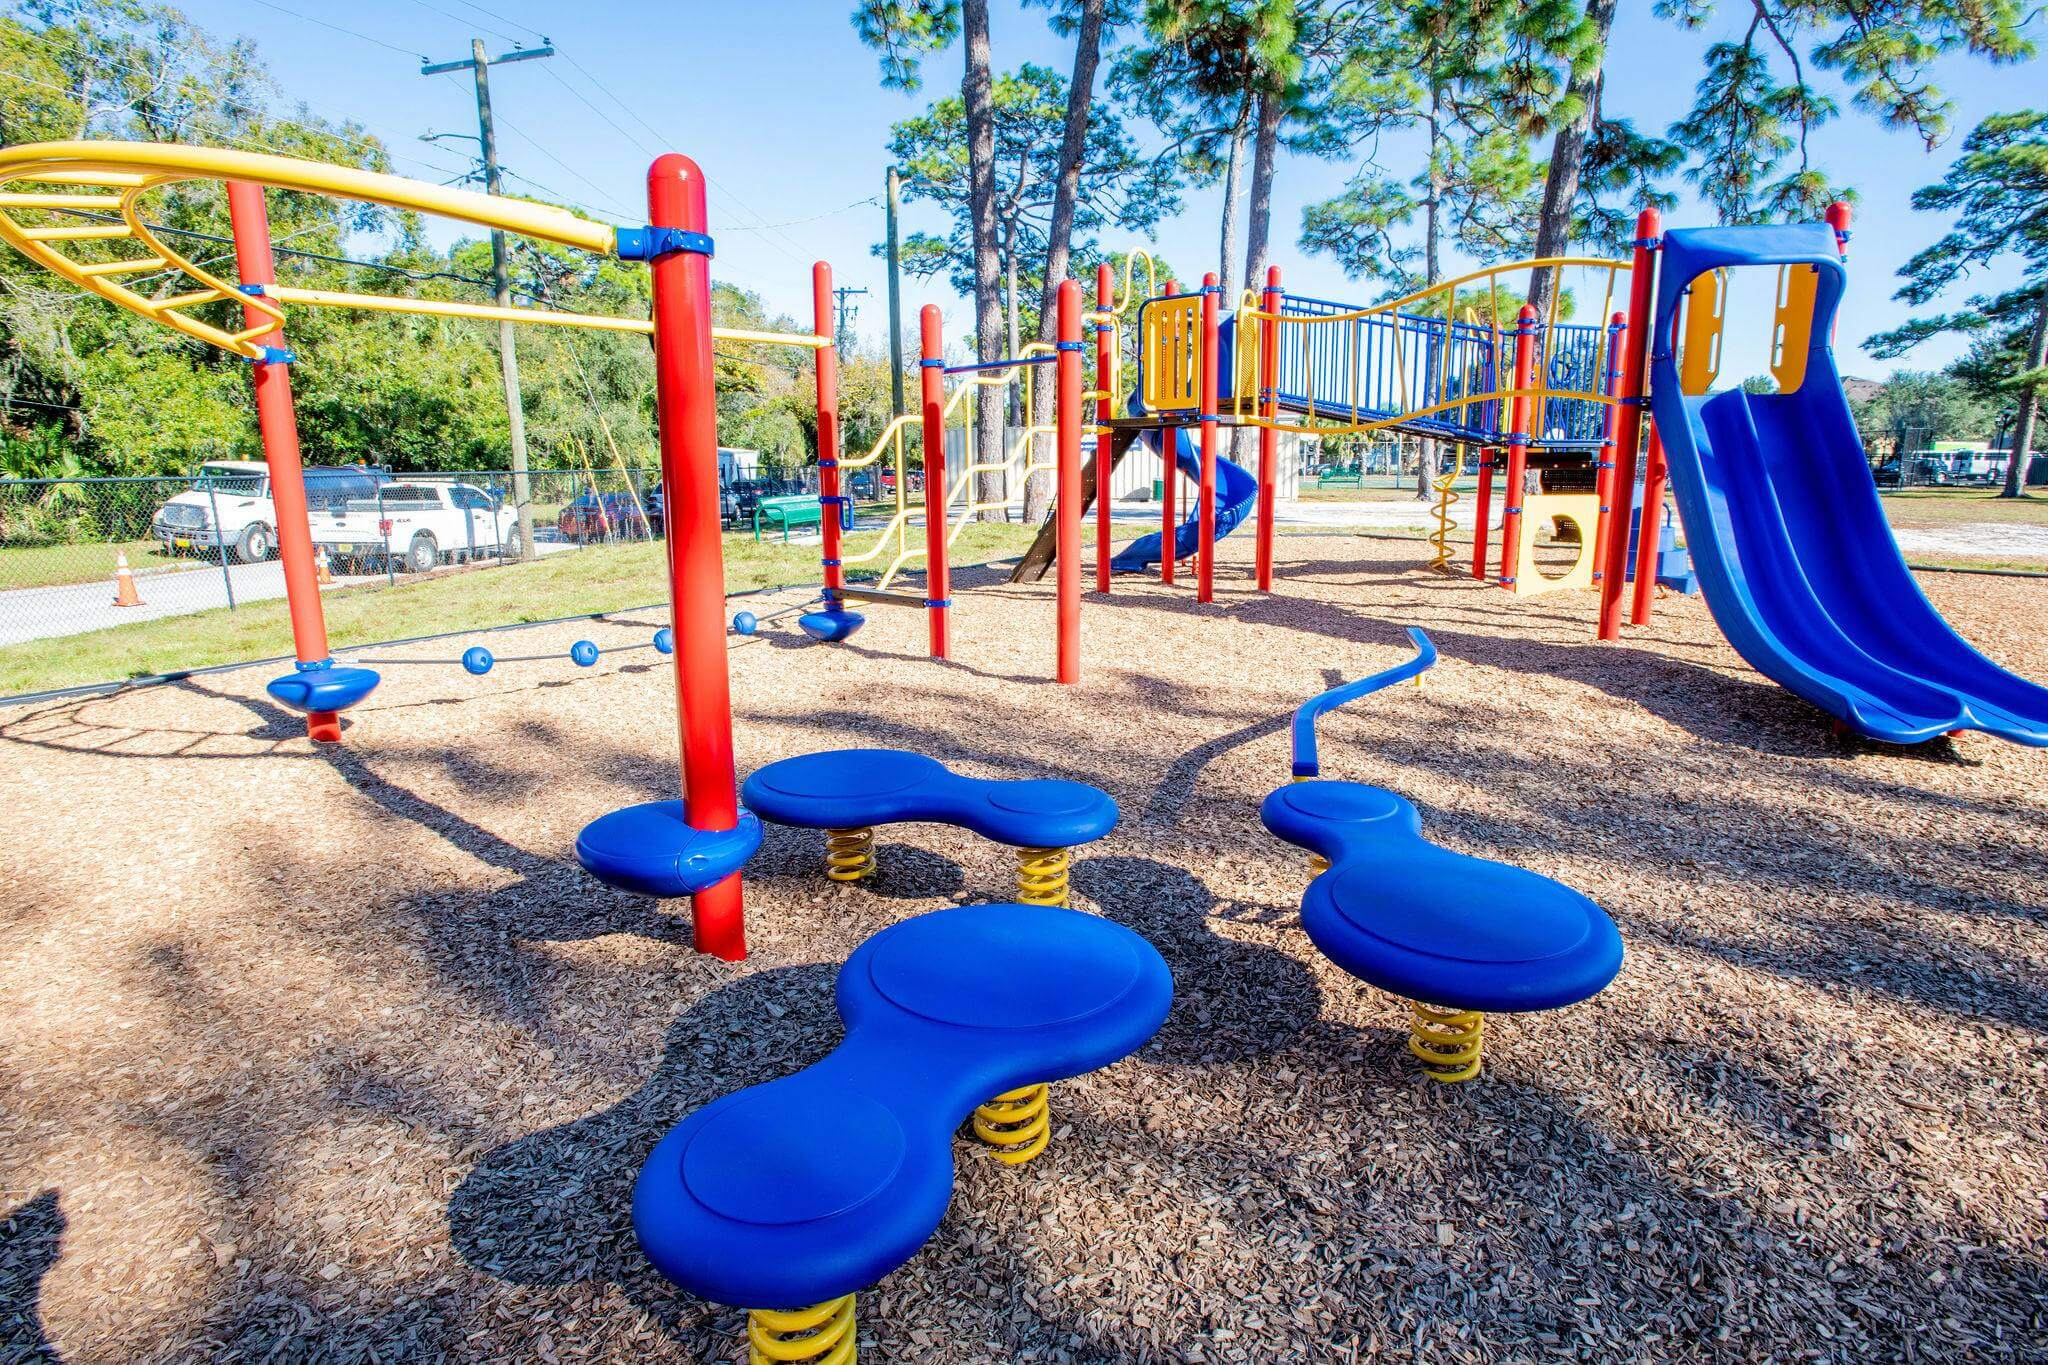 ANNOUNCED: Kaboom To Build 7 New Playscapes In Metro Detroit